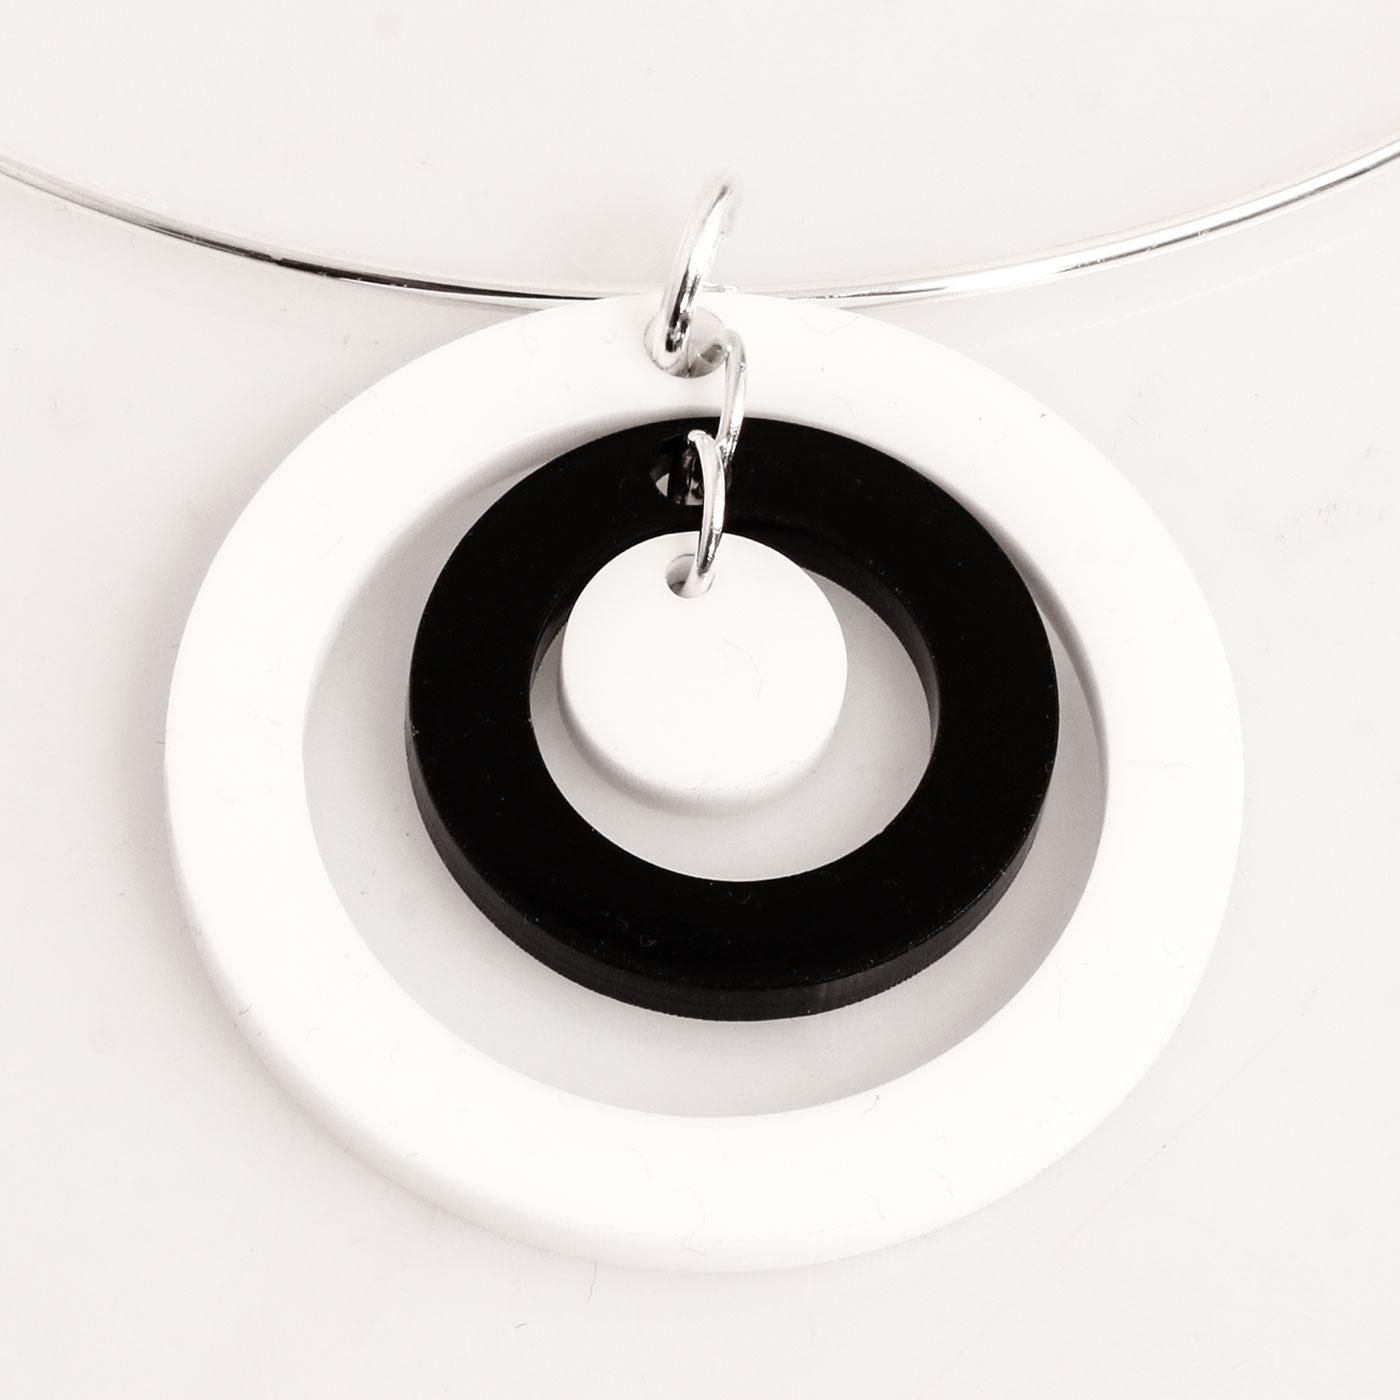 Ada Binks for Madcap England 60s Mod Concentric Circles Choker Necklace in White